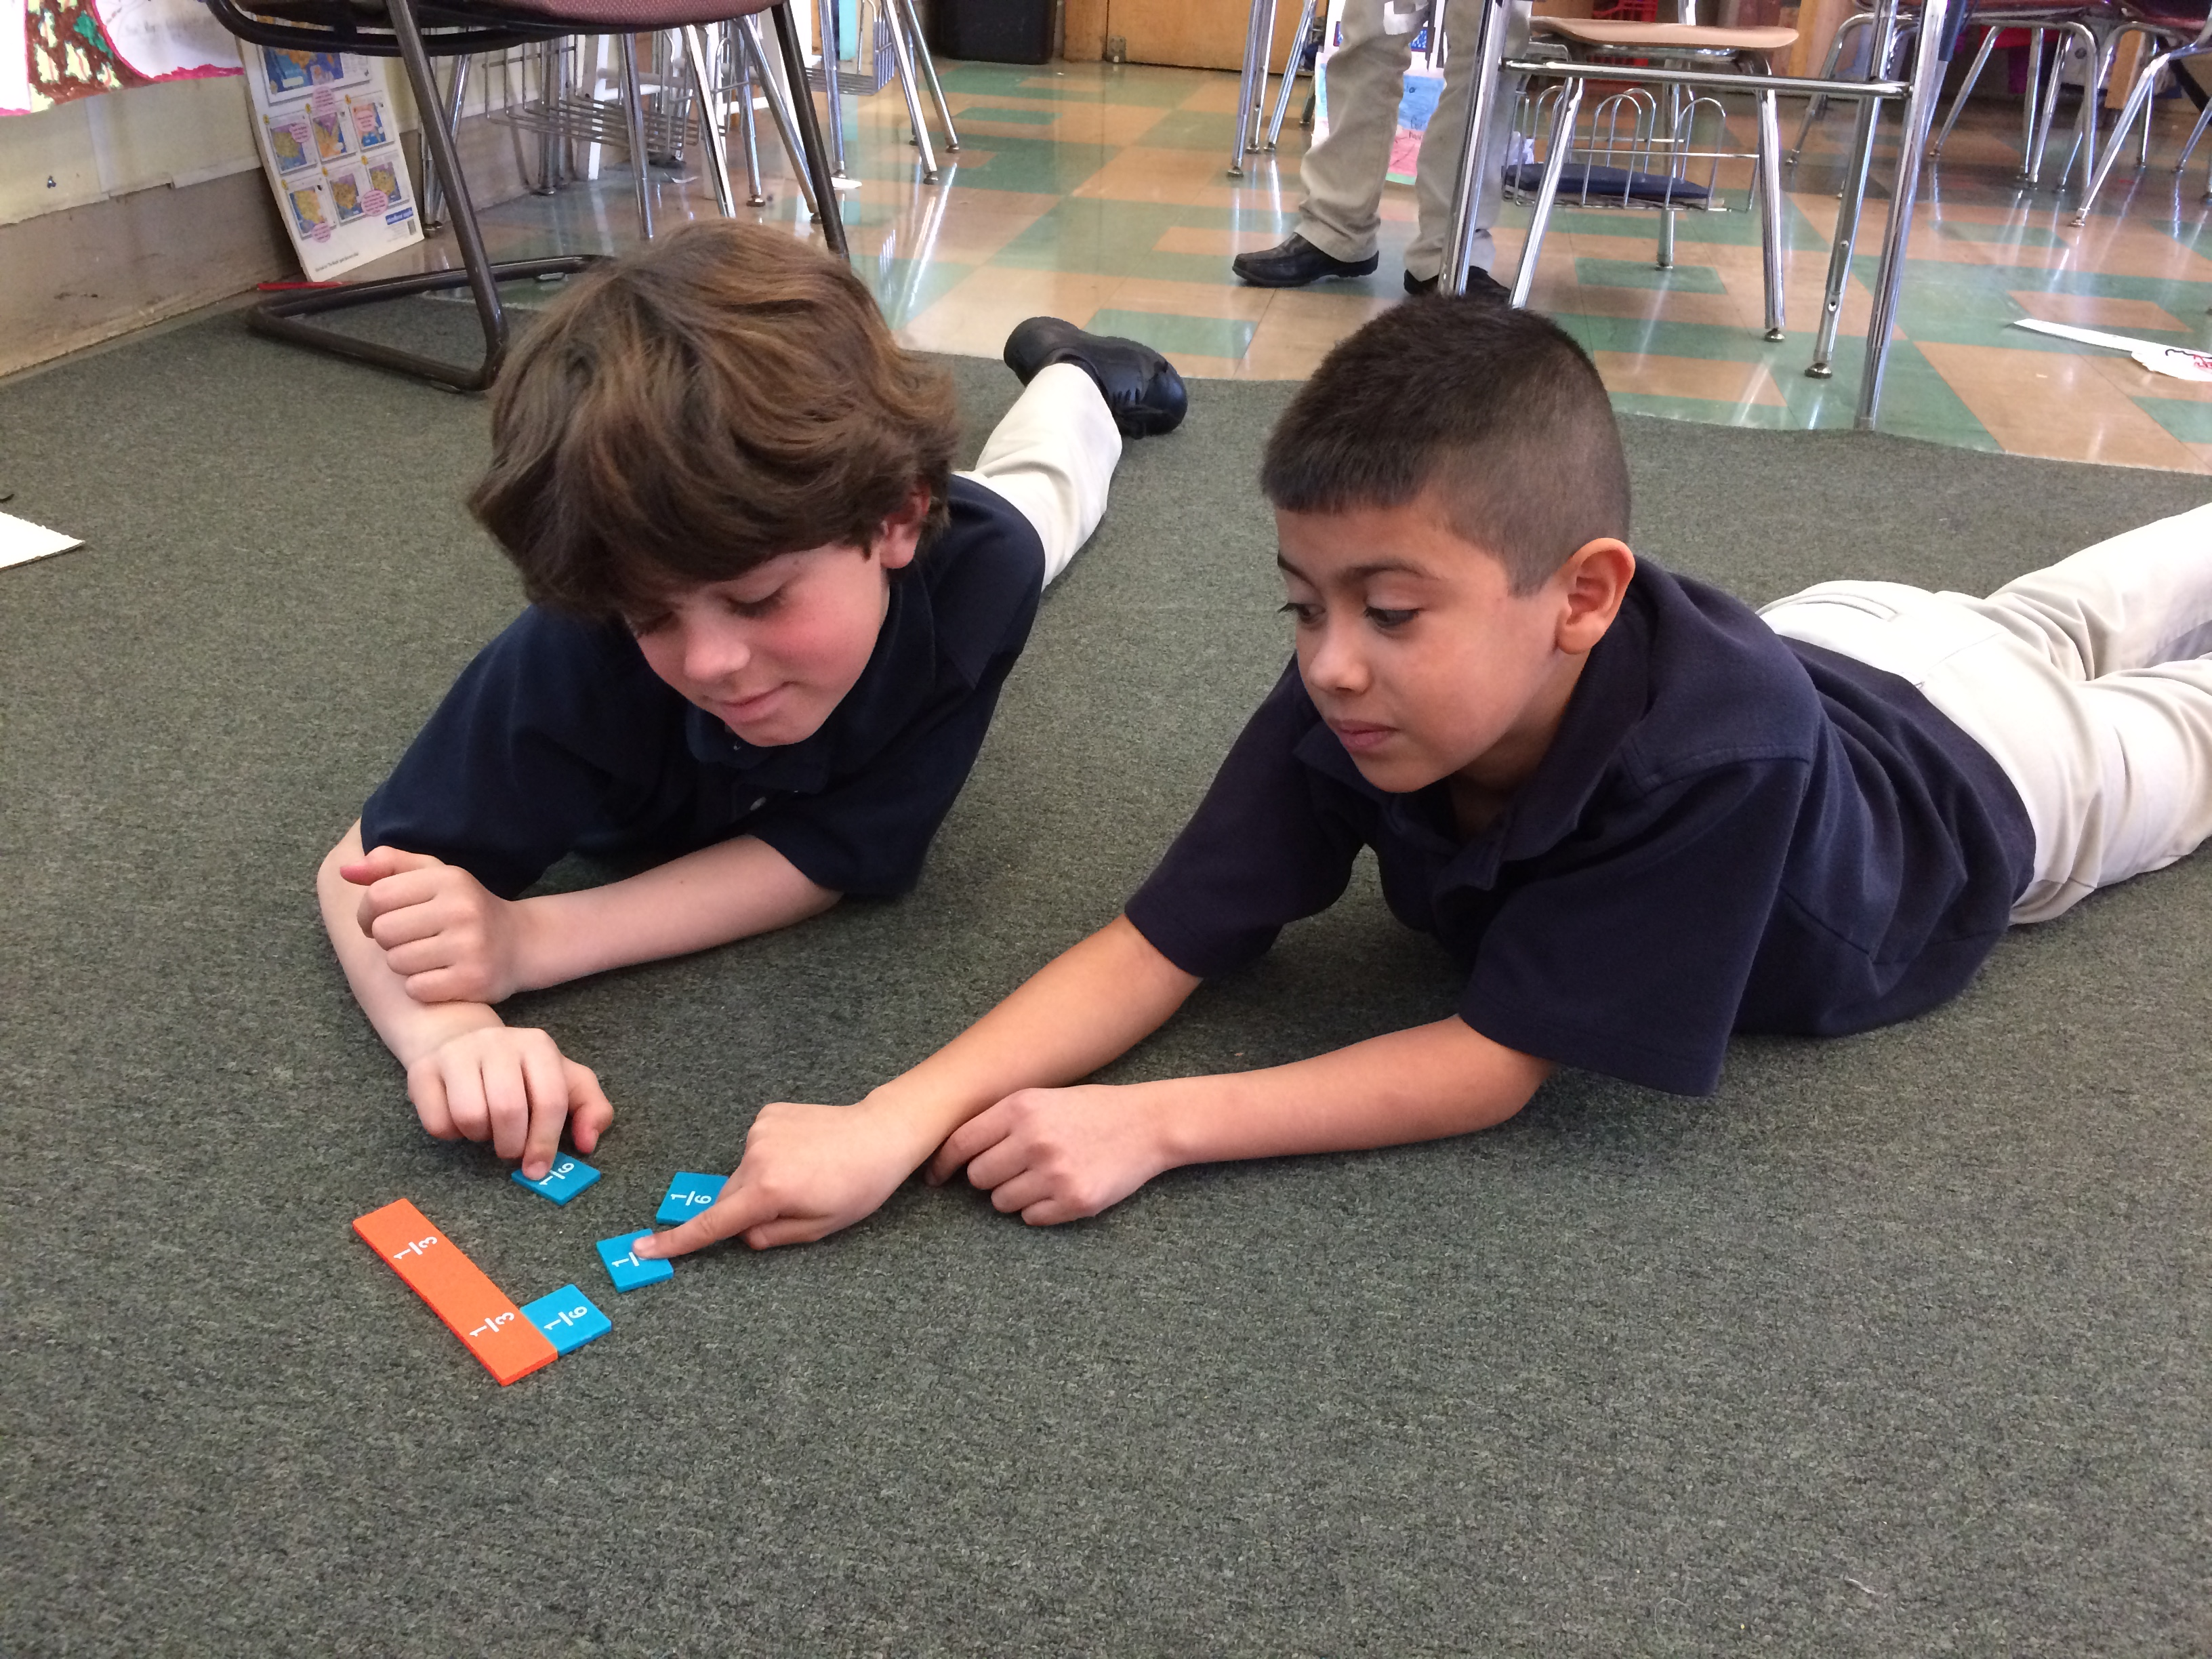 Fraction tiles to find equivalent fractions